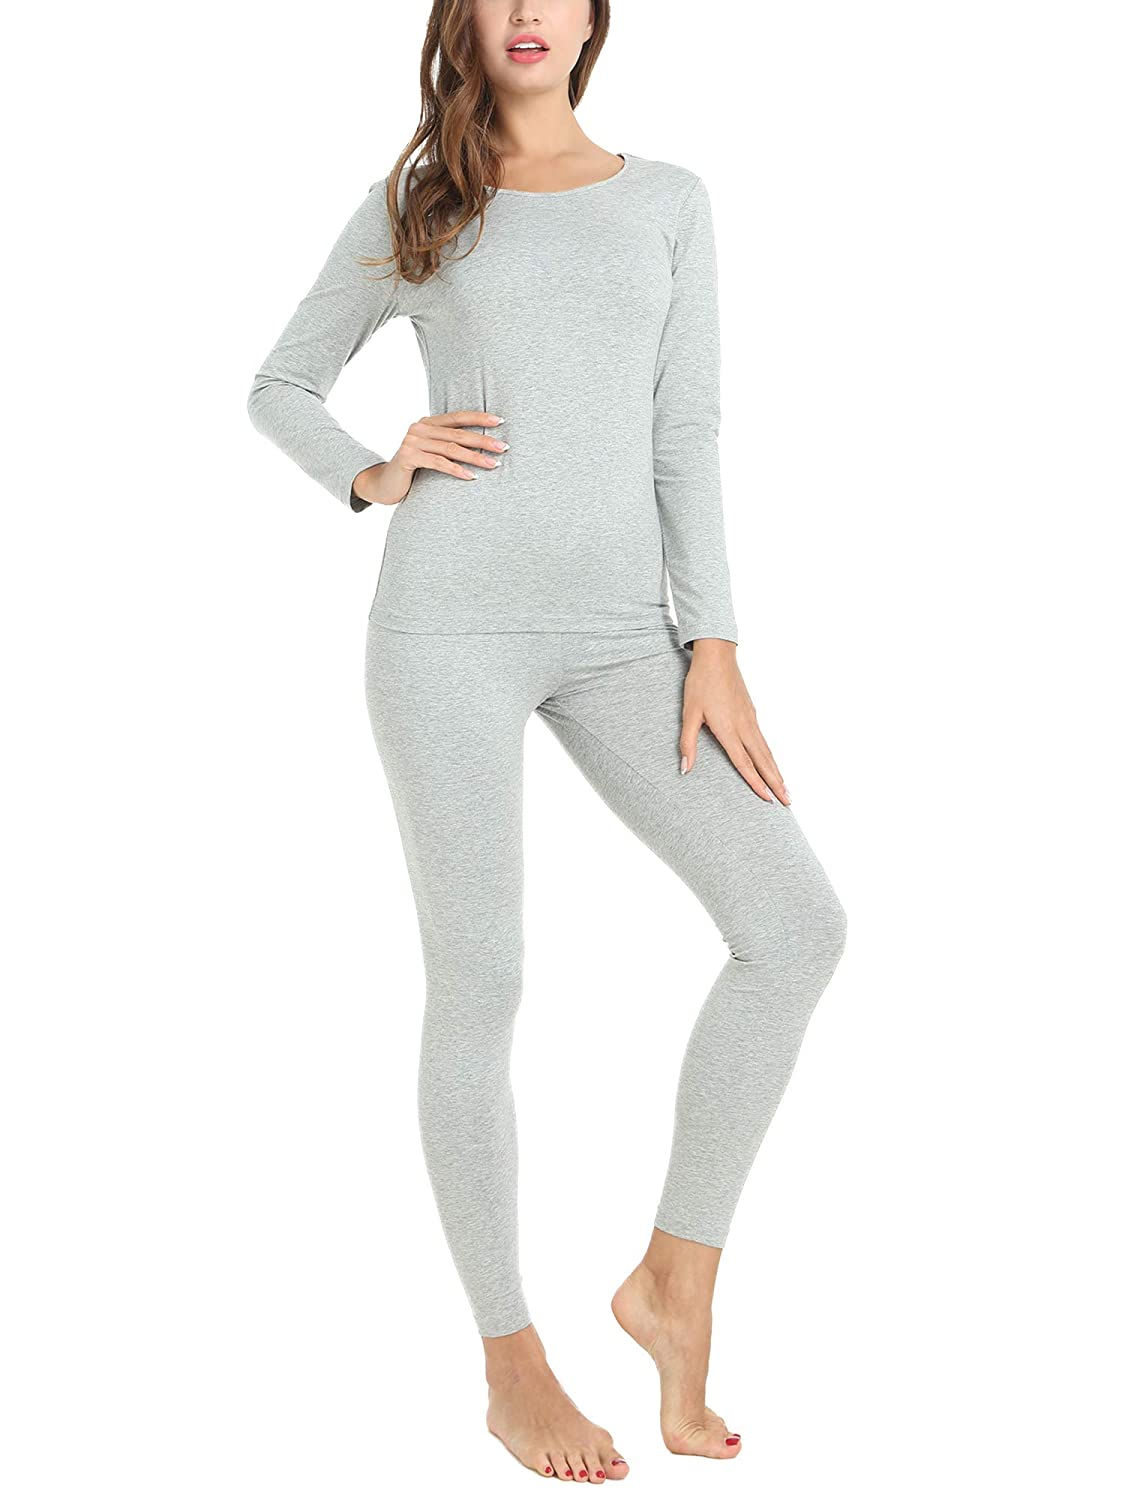 Amorbella Thermal Underwear for Women Cotton Knit Base Layer Long John Set S-XXL